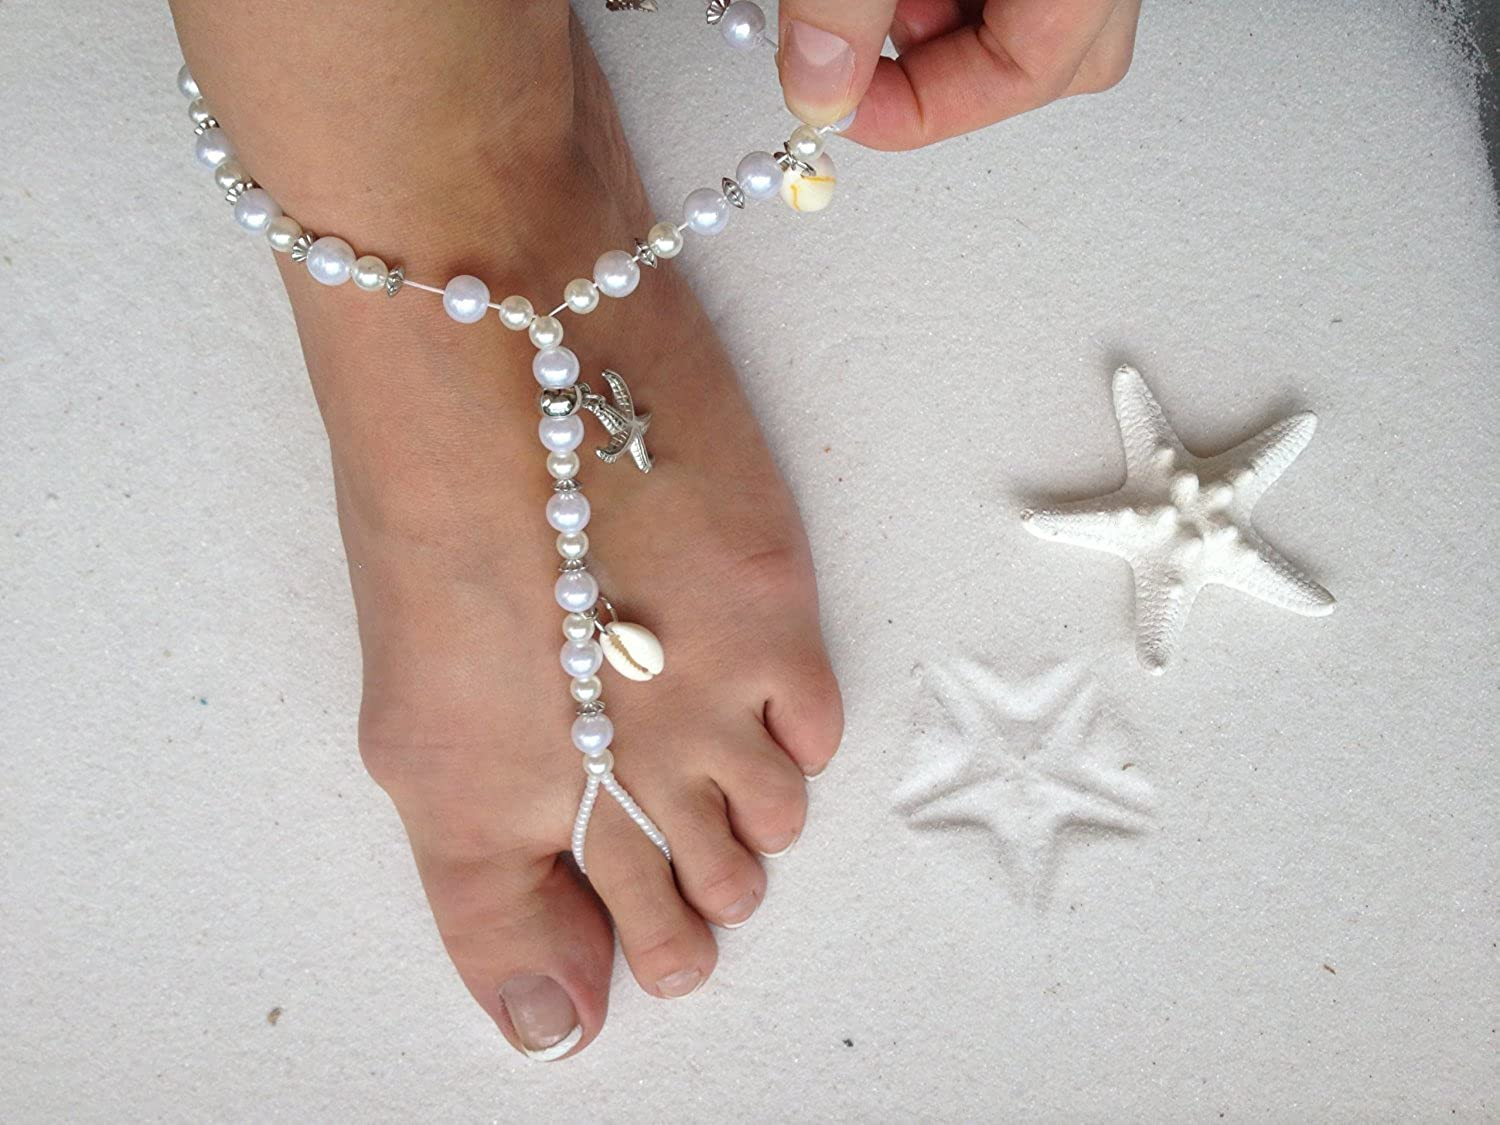 5c9f3fb5ed24a Amazon.com  Ivory Barefoot Sandals Beach Wedding Beaded Anklet with  Starfish and Real Seashells - Set of 2  Shoes